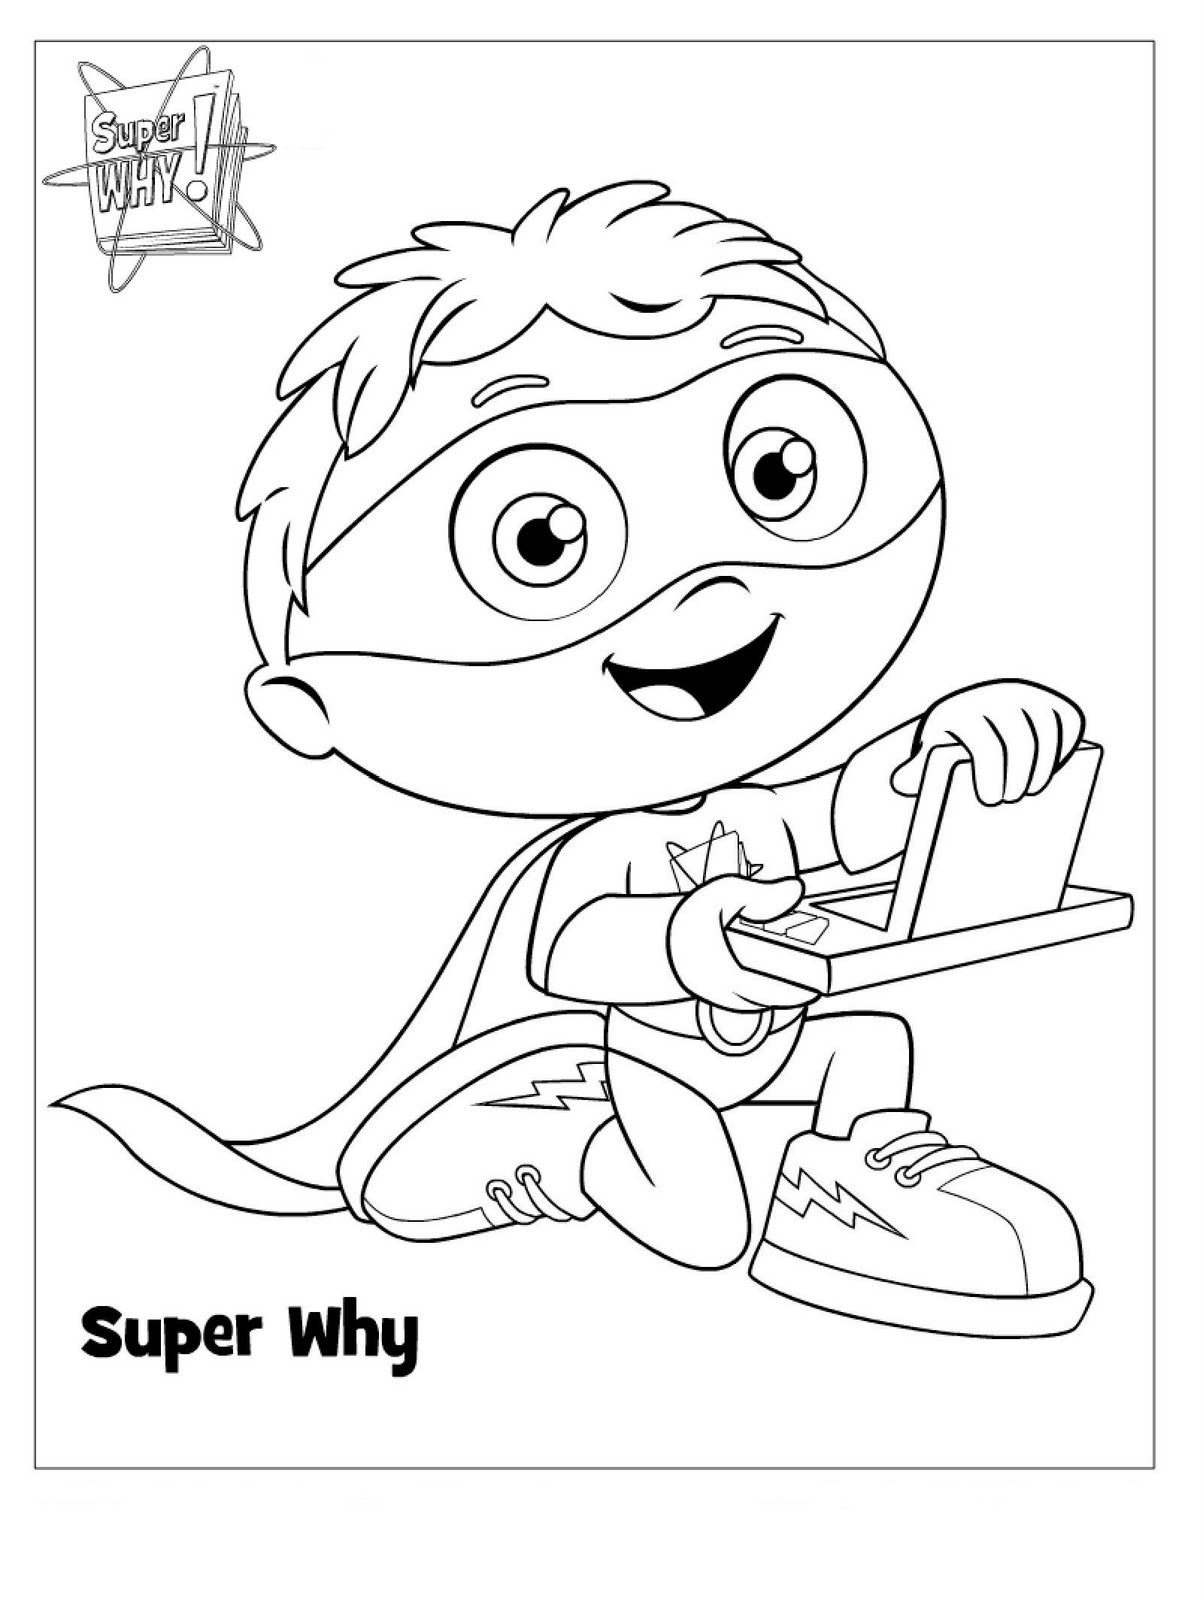 Super why coloring pages best coloring pages for kids for Coloring book pages free